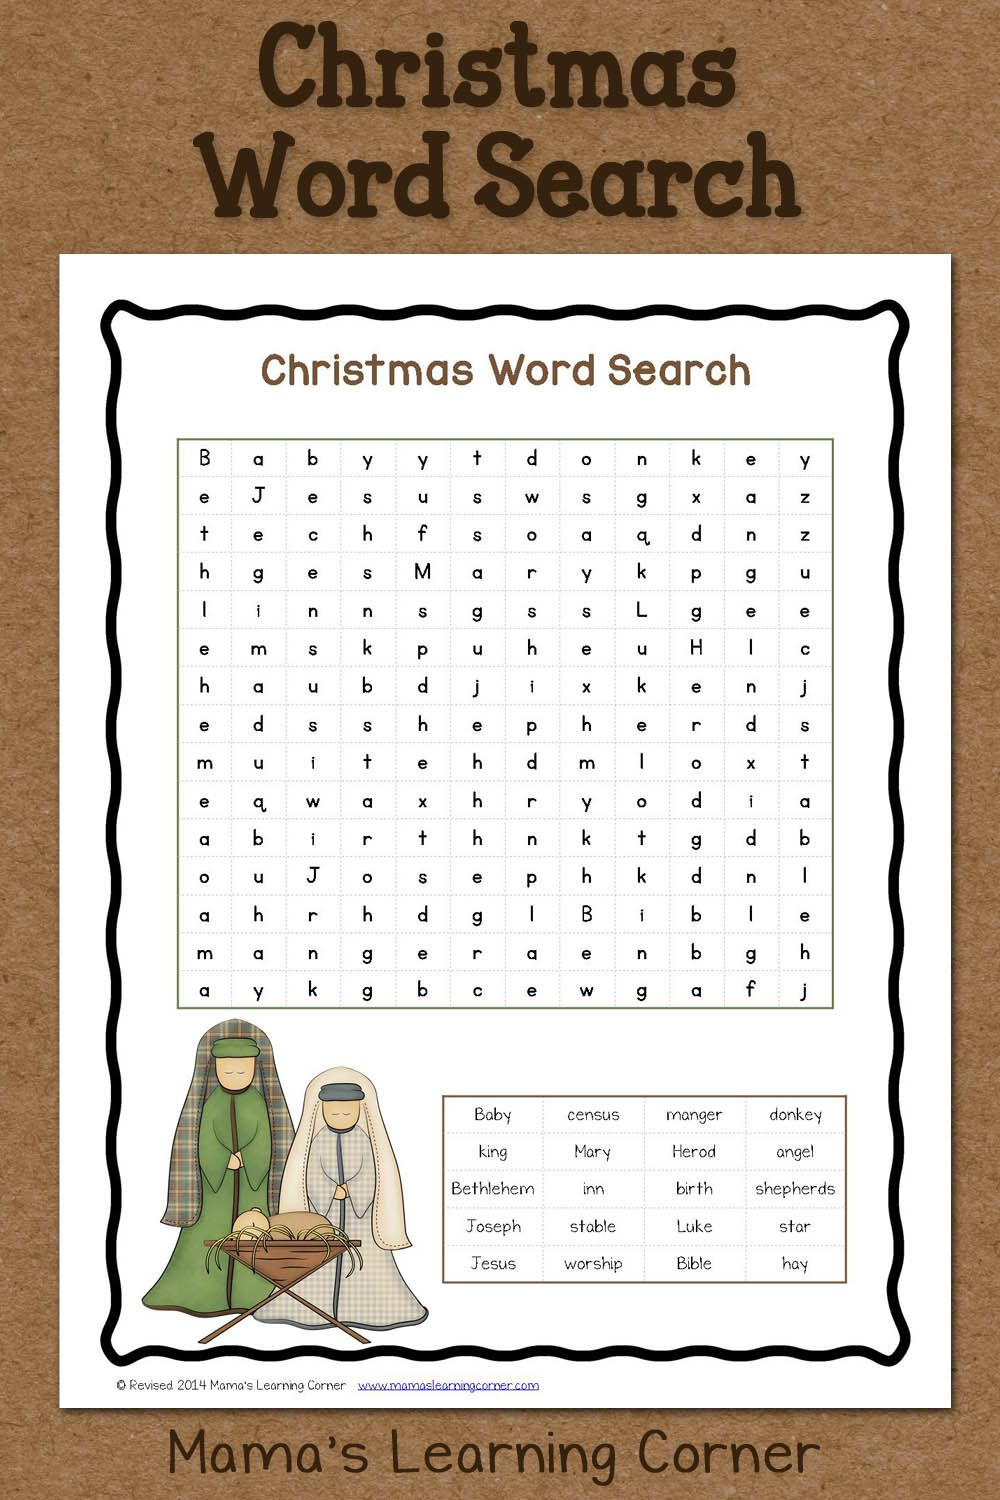 Free Word Search Games To Play Online